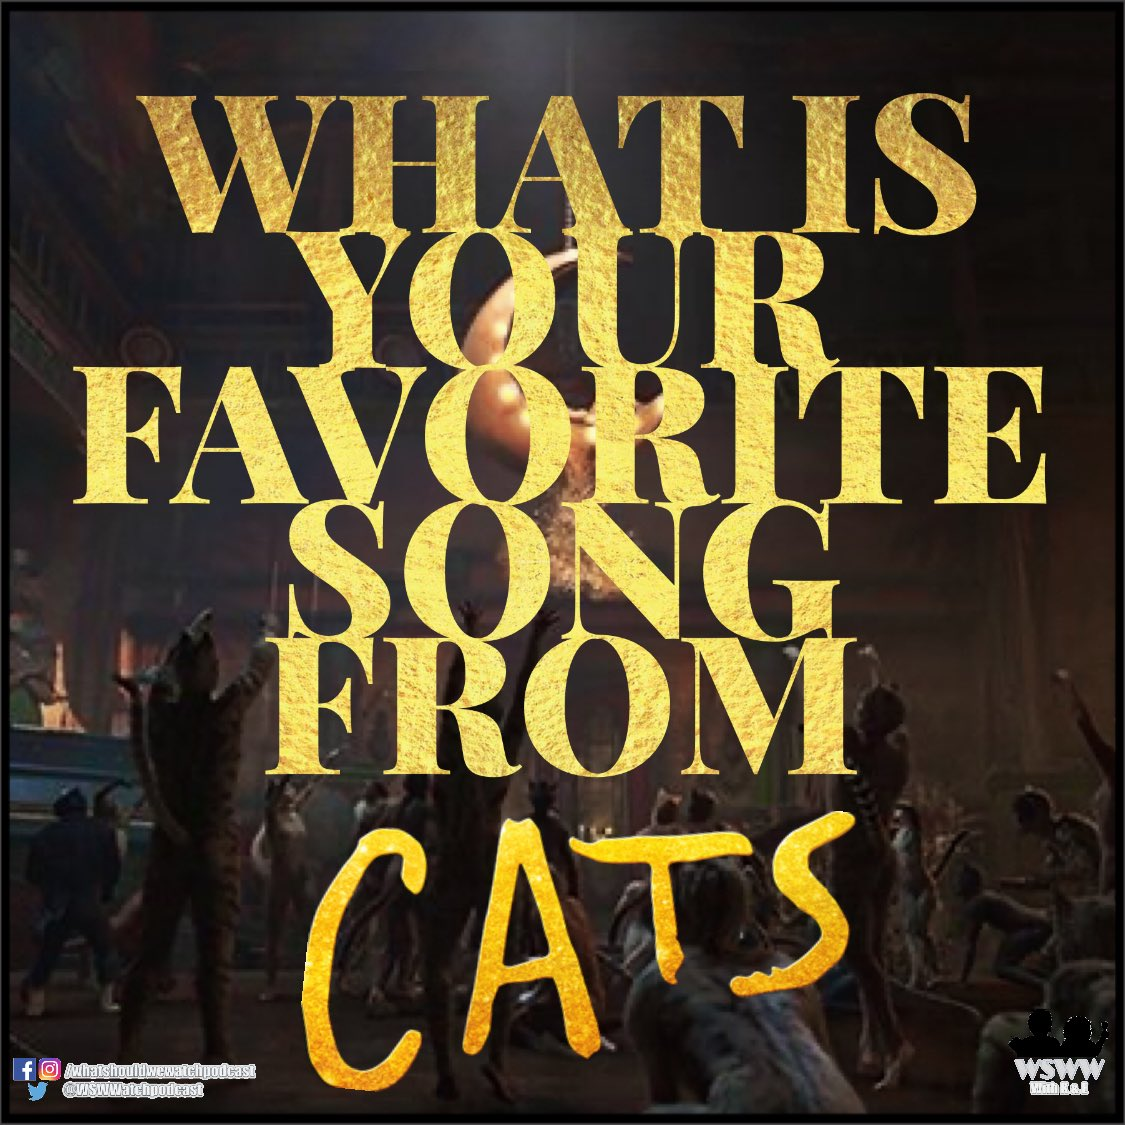 Do any of the songs bring back #memories ? 😆🎶🎶🎶 Let us know your favorite in the comments below ⬇️⬇️⬇️ Listen to more here: 🍏spoti.fi/2o8GabM #catsmovie #catsmusical #jelliclecats #jellicleball #feverdream #PodNation #broadway #andrewlloydwebber #musicaltheatre